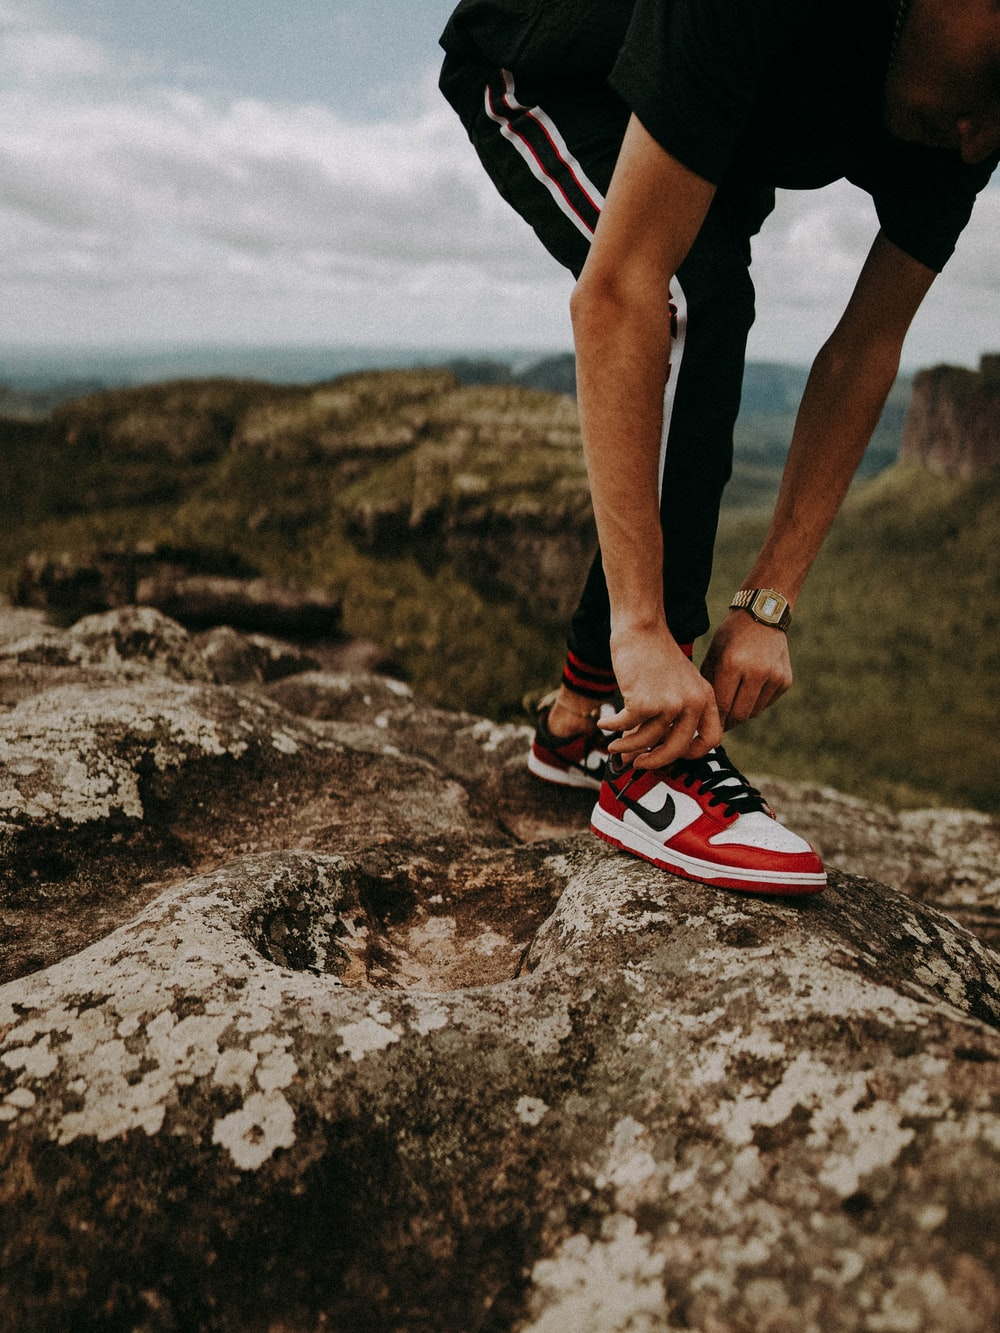 person in black shorts and red nike sneakers standing on rocky ground during daytime